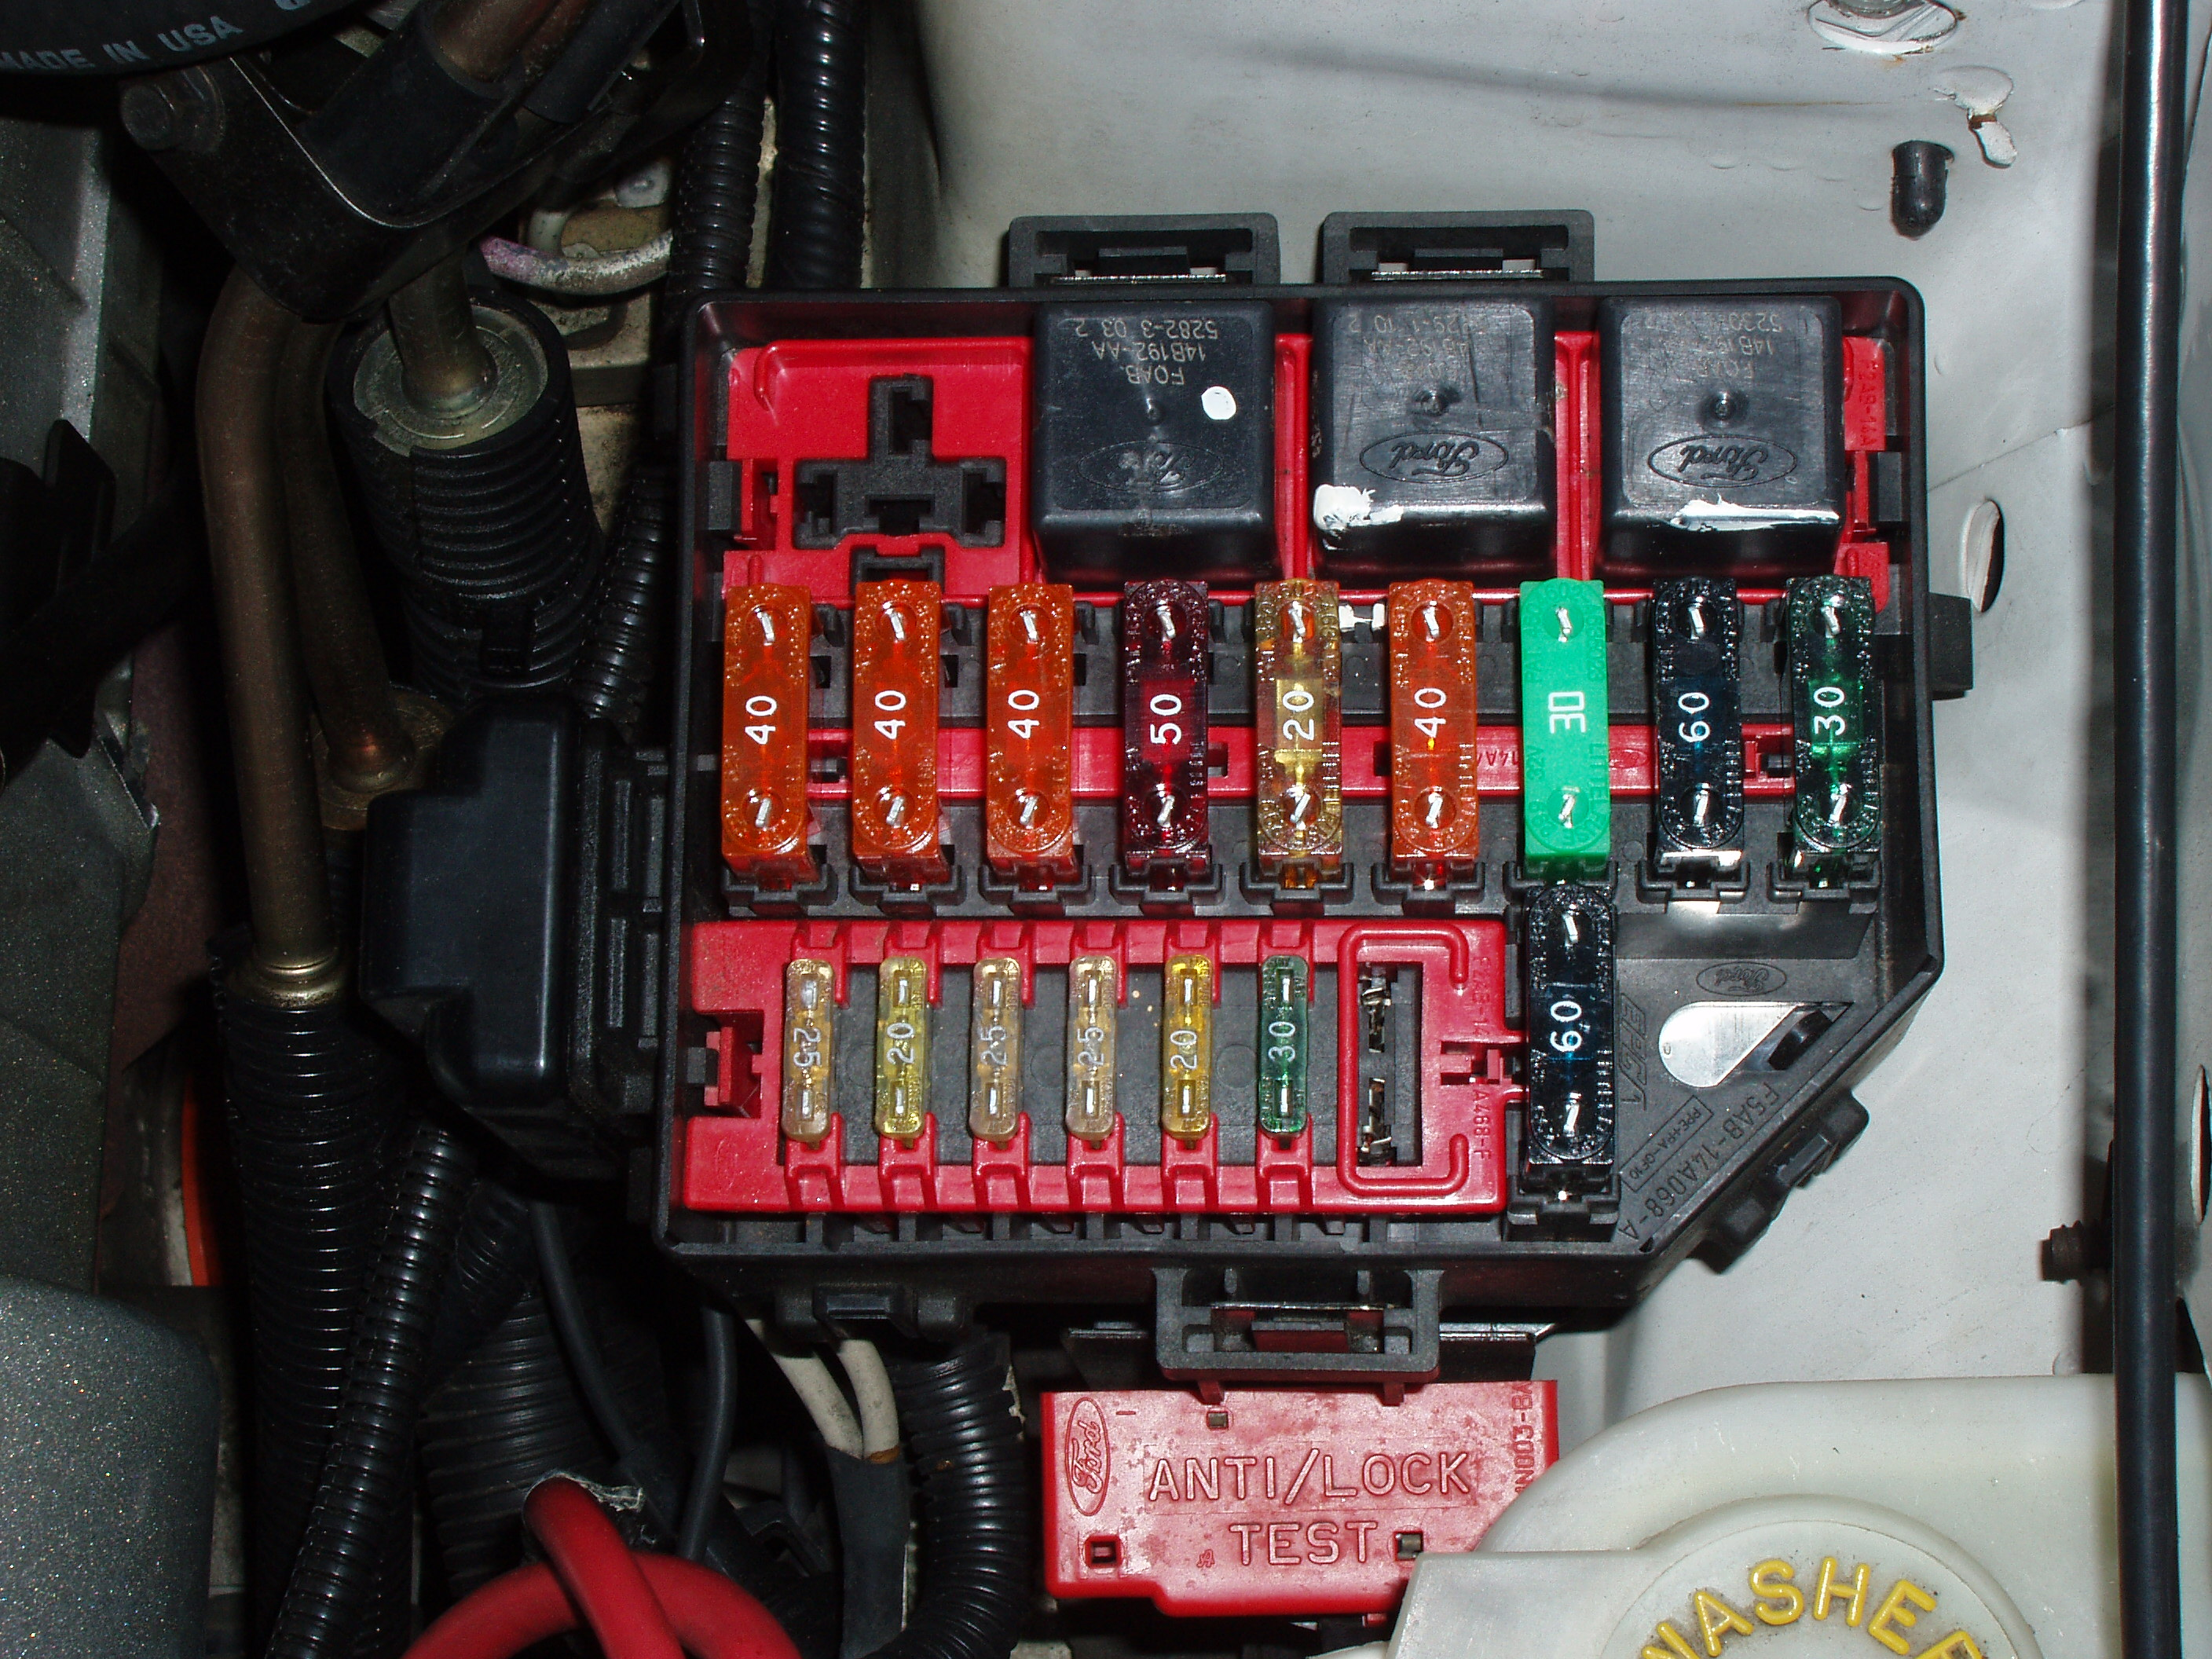 2004 Mustang Fuse Box Location List Of Schematic Circuit Diagram 96 Ford Gt 1996 To 2014 Why Is Abs Light On Mustangforums Rh Com Engine Layout